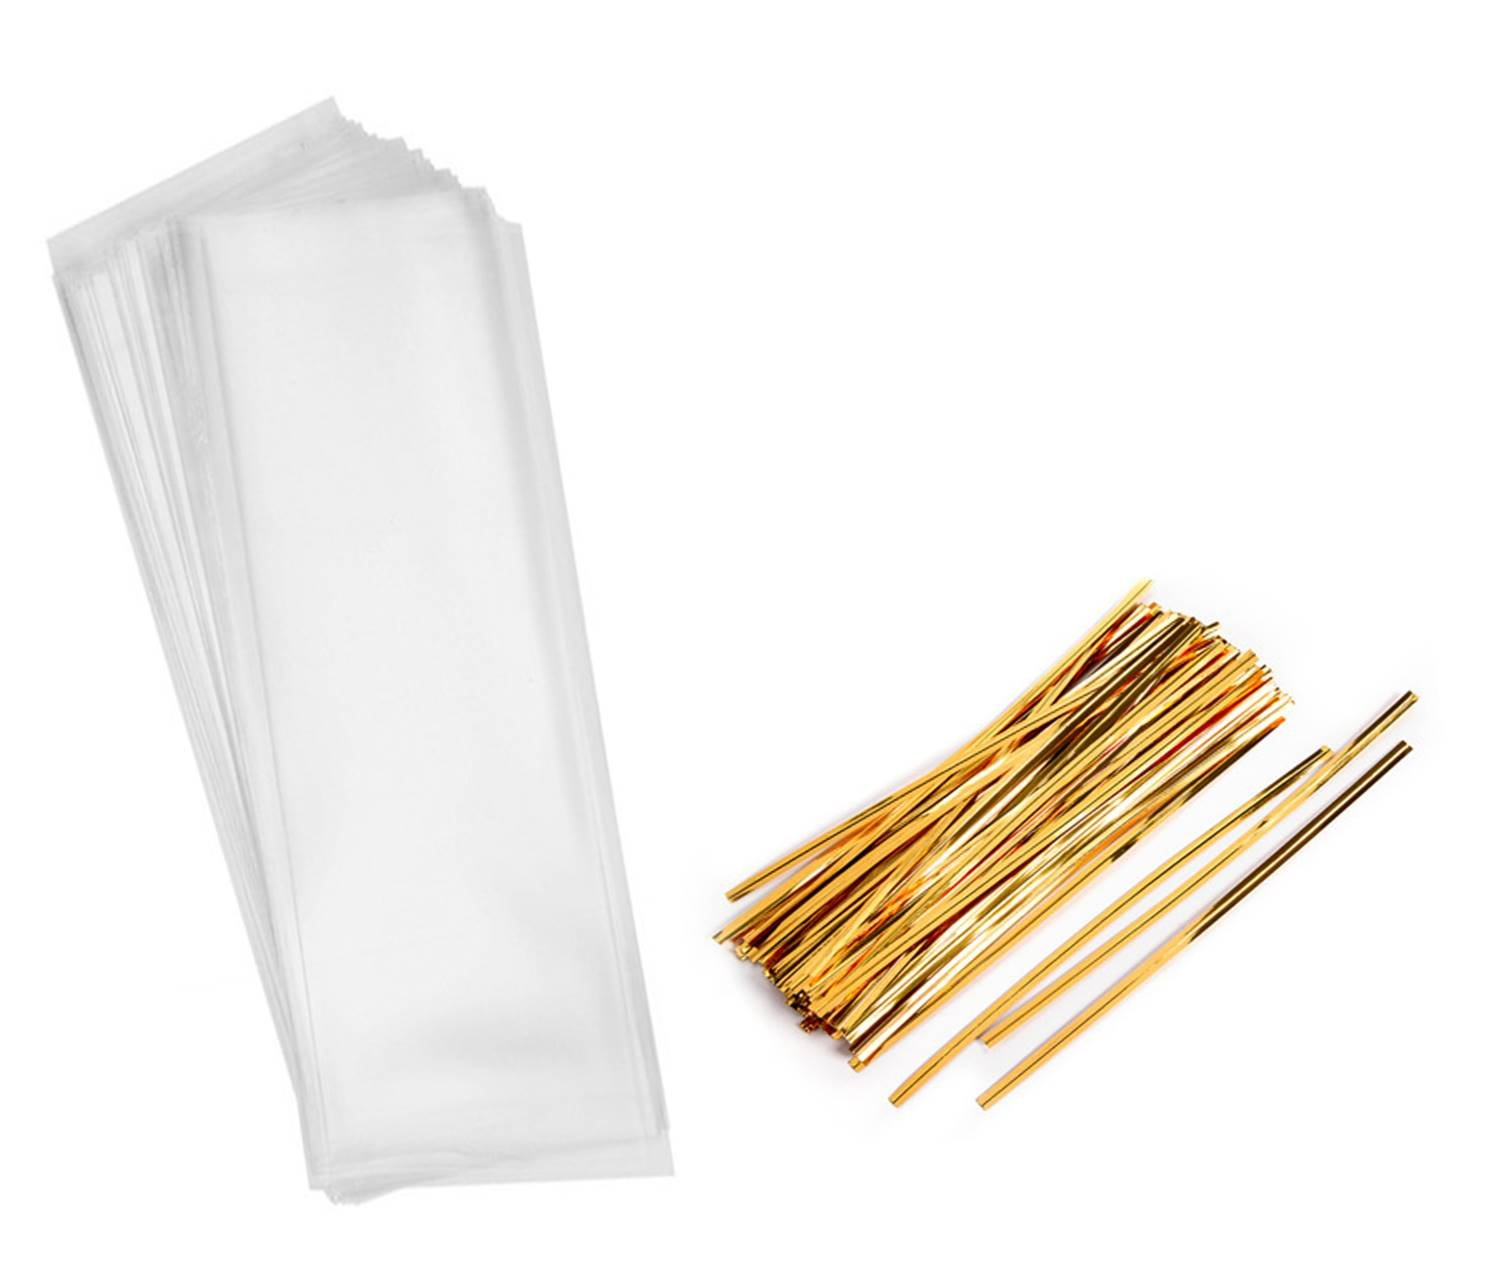 150 Cellophane Pretzel Candy Bags - Clear Long Candy Treat Bags For Birthday Favor Pretzel Icy Candy Popsicle (2 X 10 Inches), With Gold Twist Tie (6 Inches)